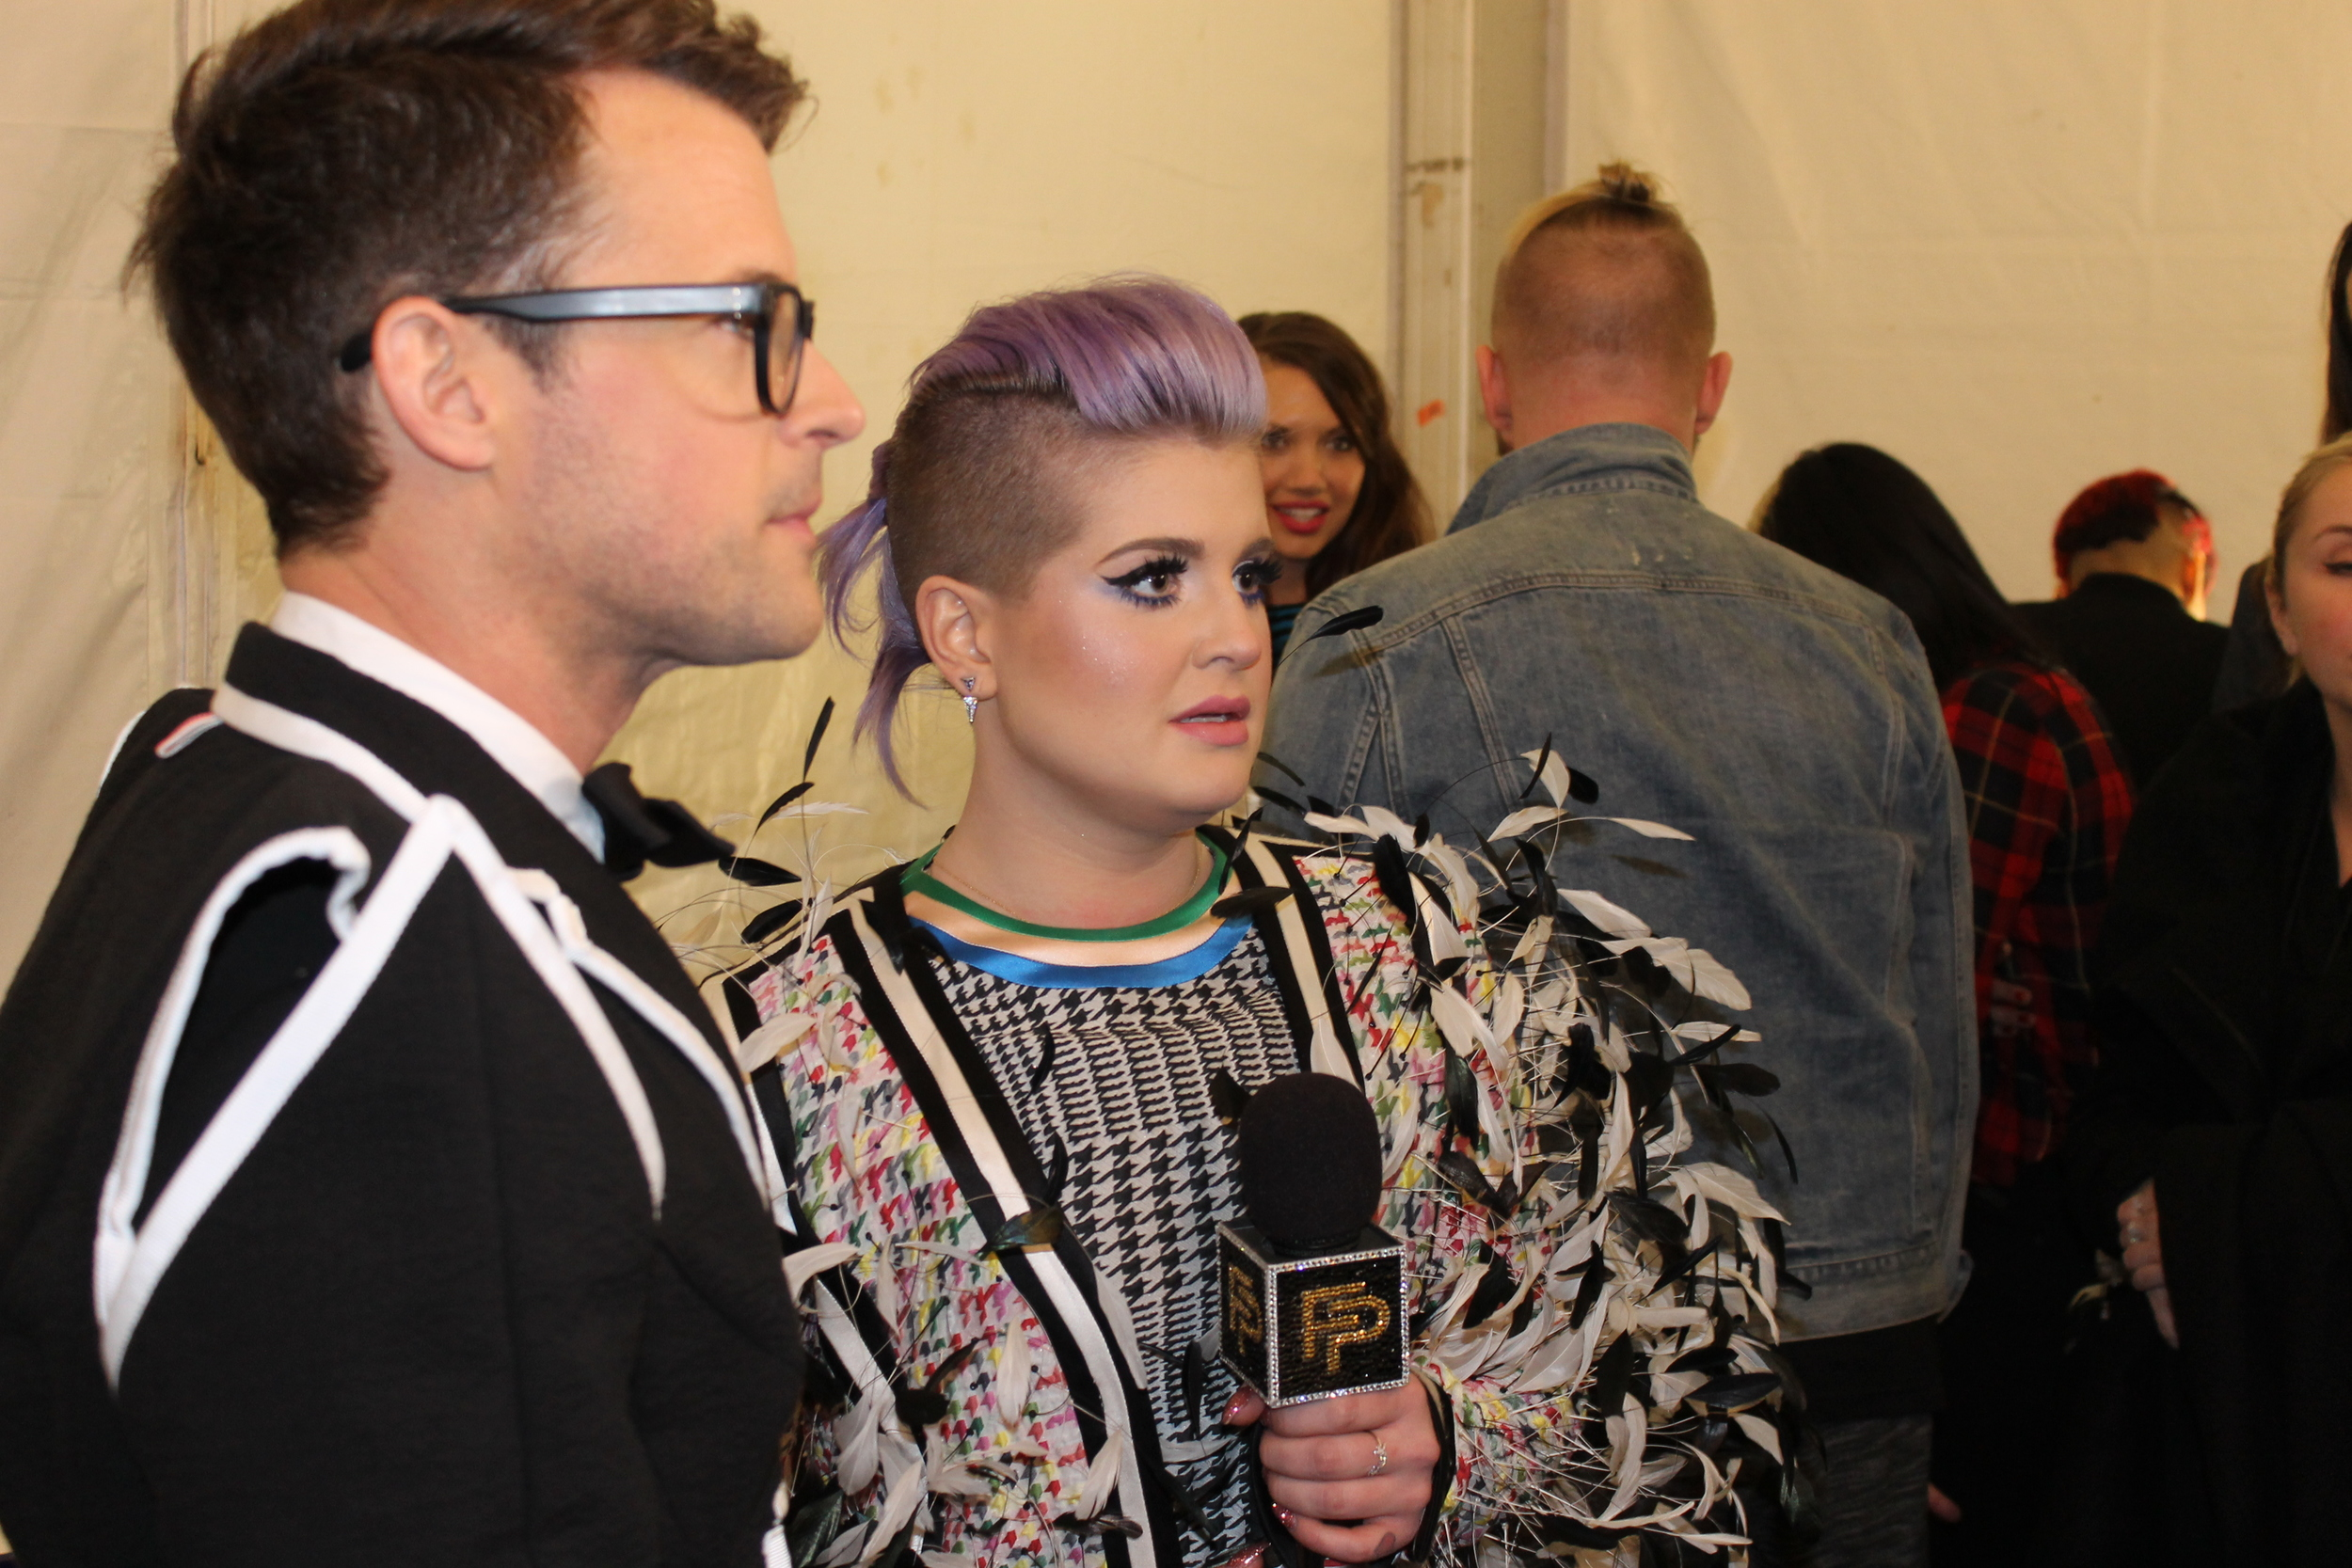 Brad Goreski and Kelly Osbourne of E's Fashion Police were on the scene.